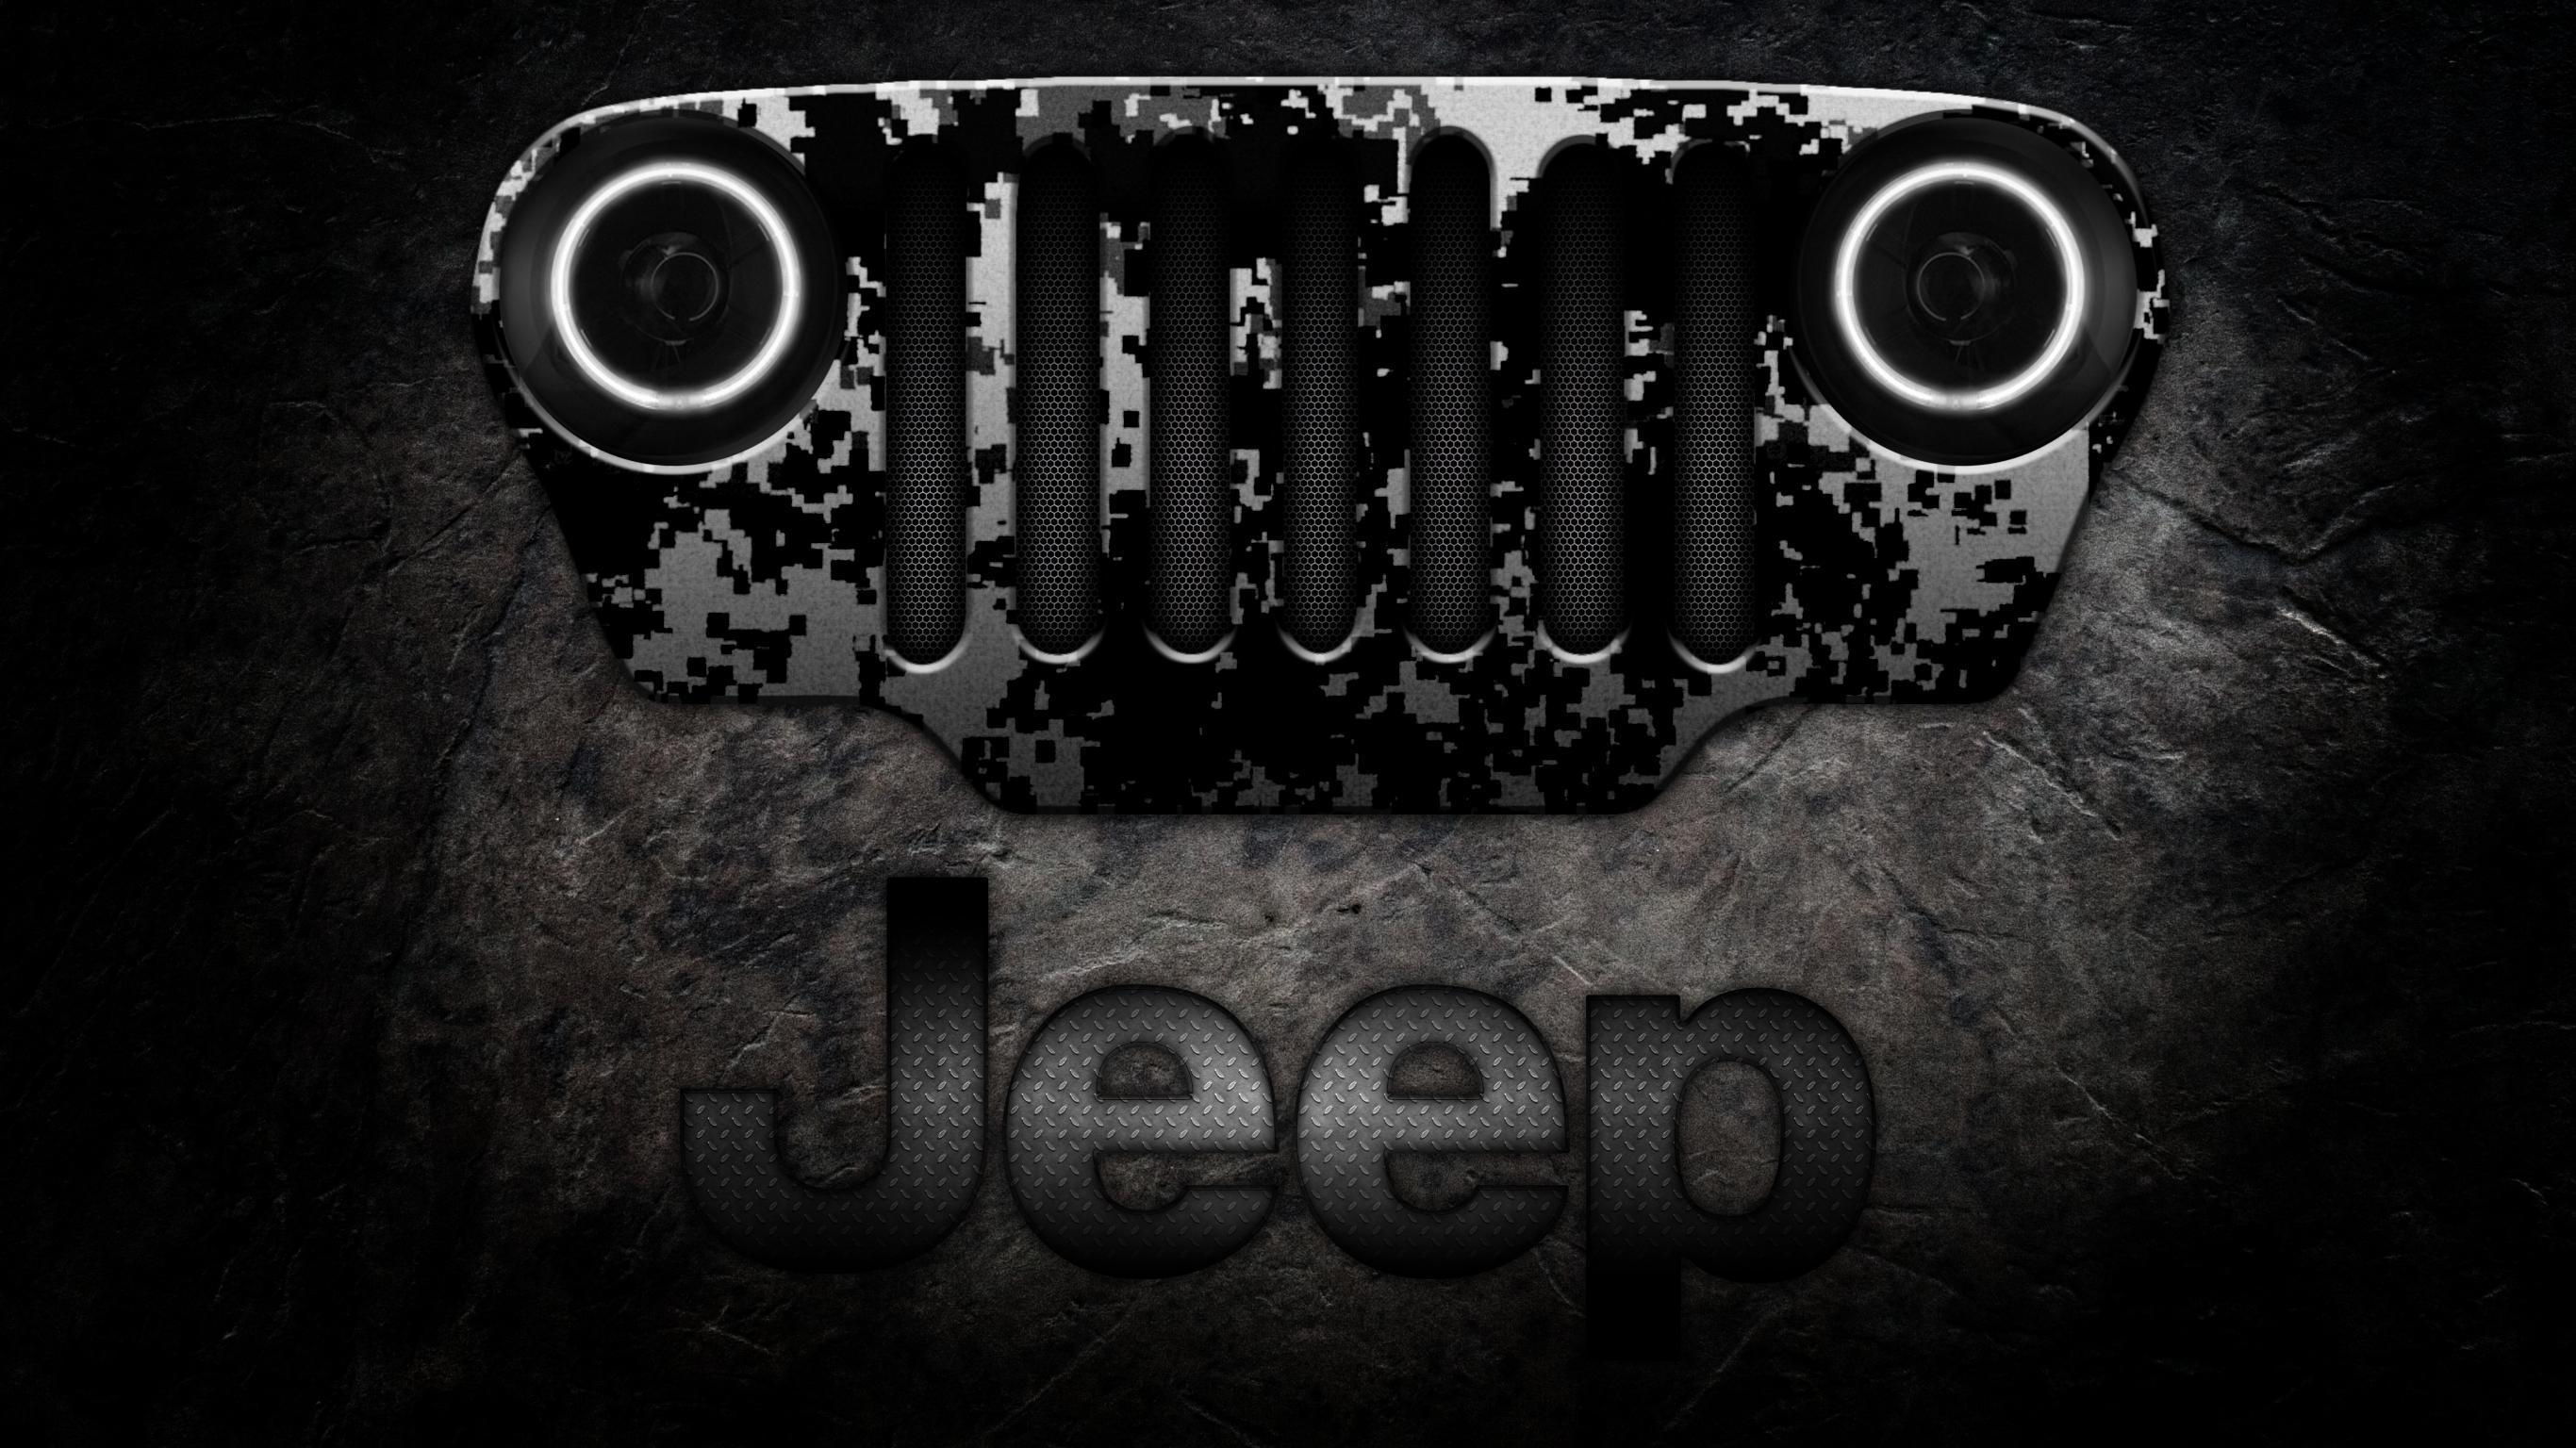 jeep logo hd wallpaper - photo #15